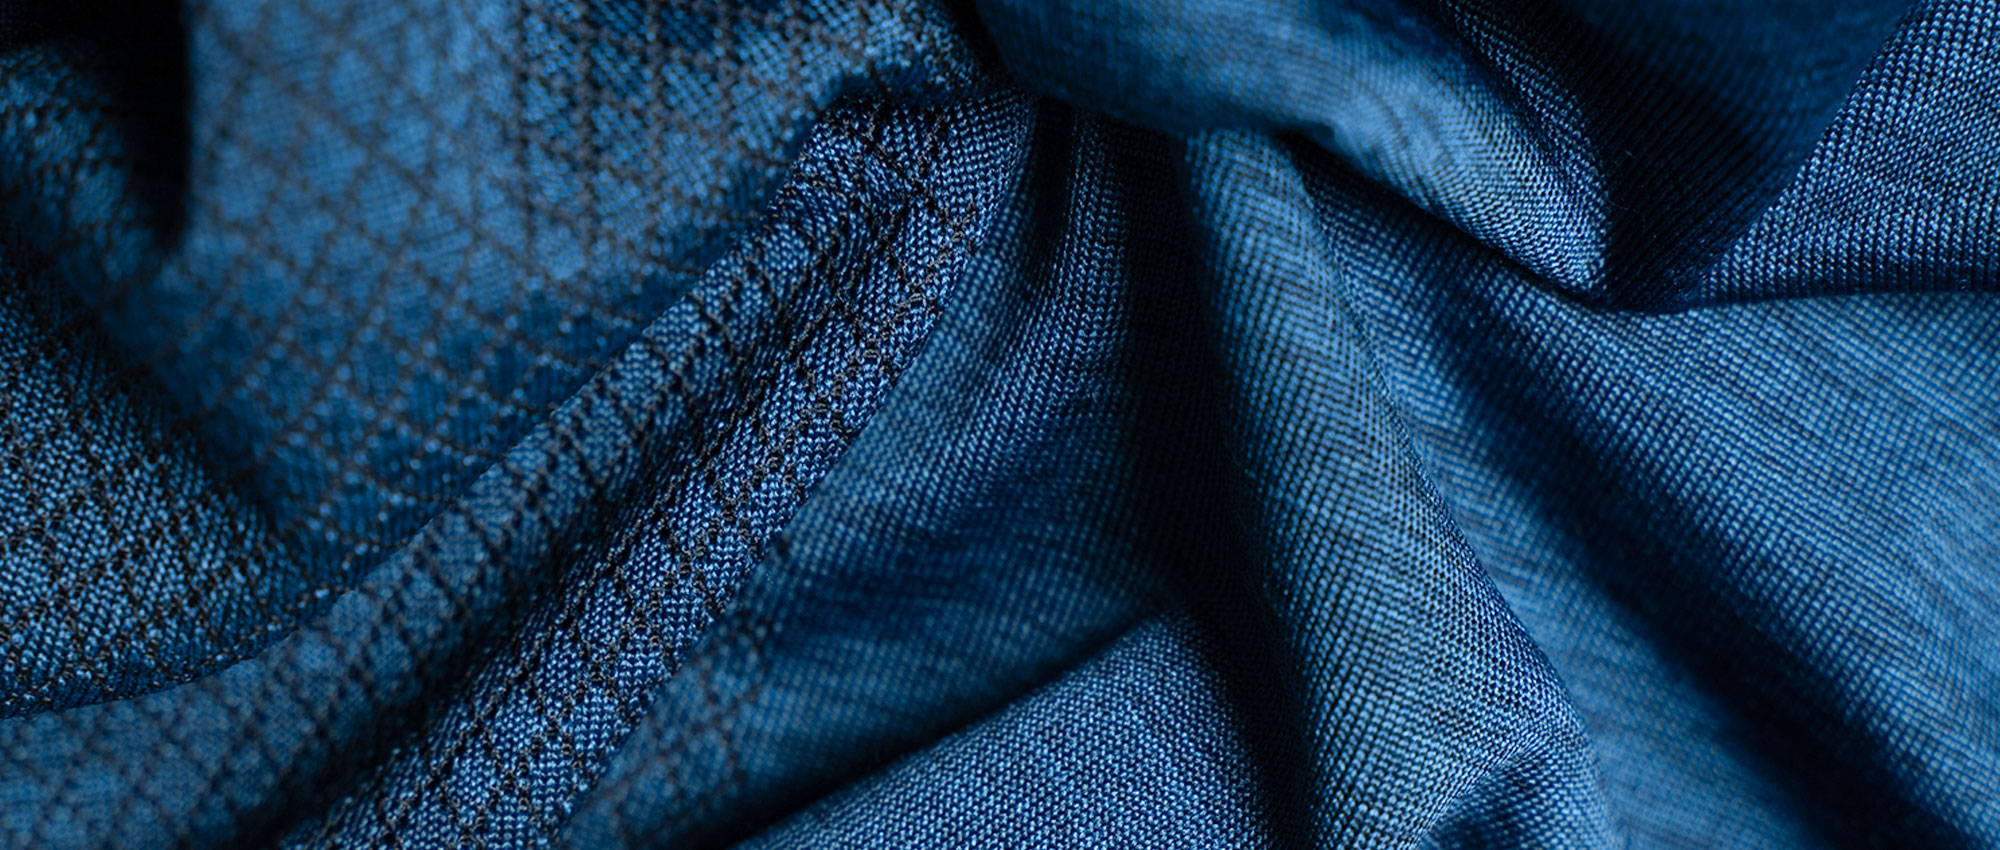 texture-of-tall-athletic-shirt